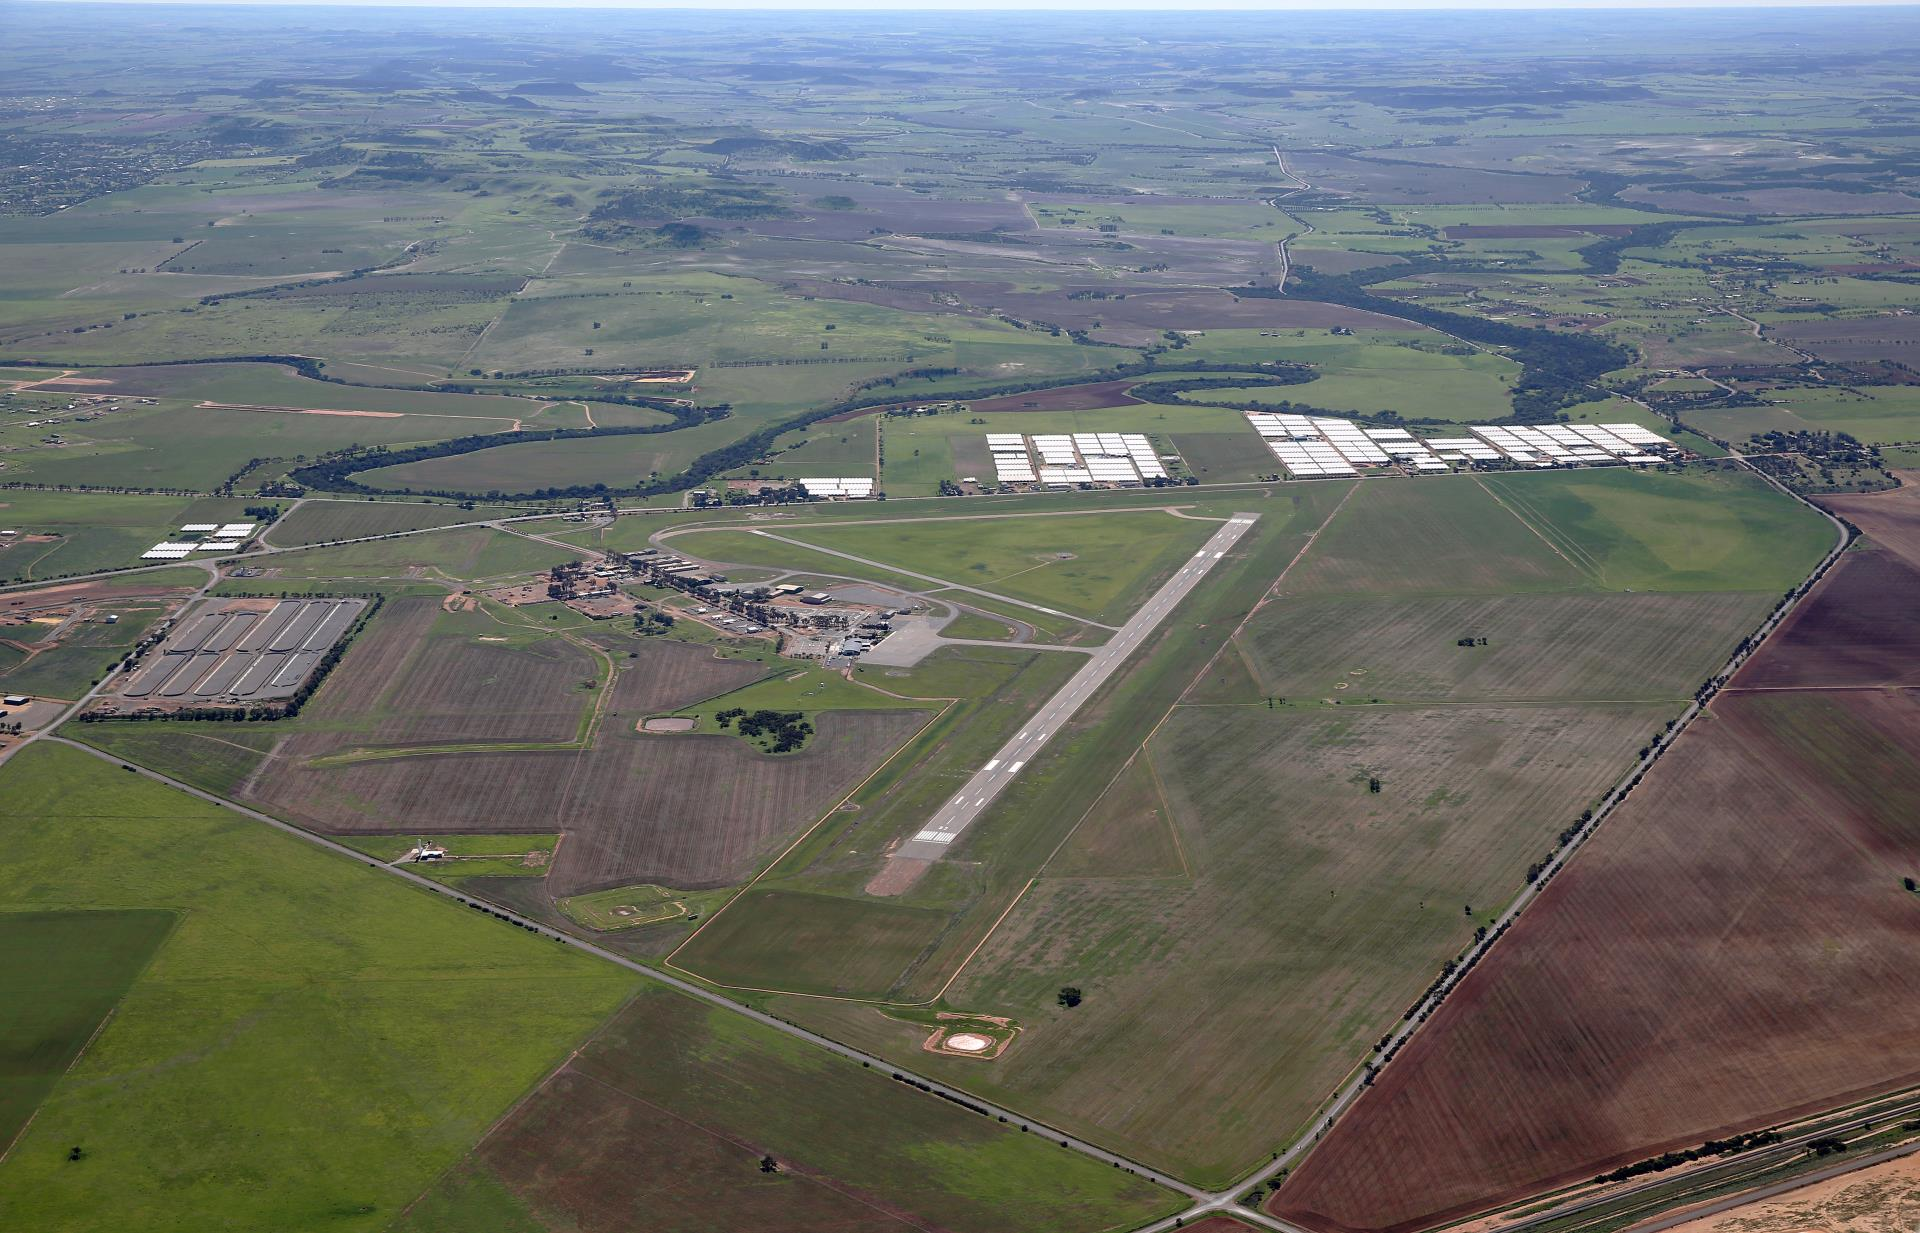 Airport precinct construction projects begin